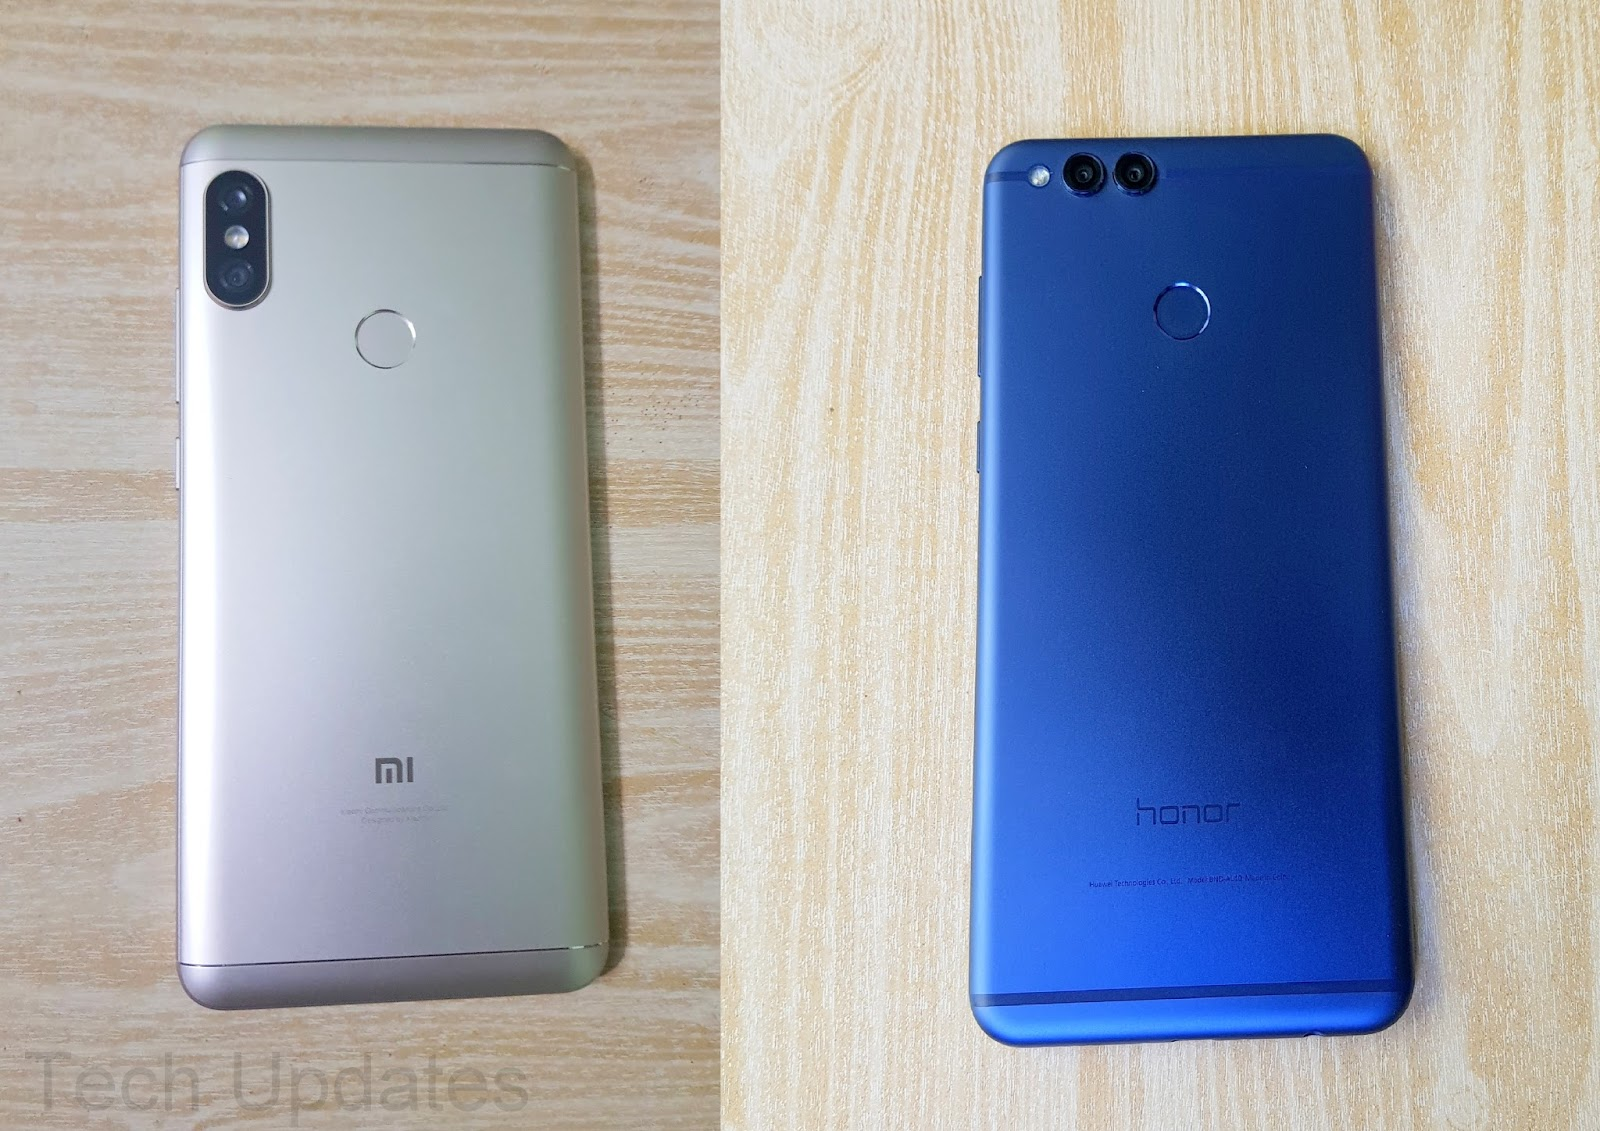 Xiaomi Redmi Note 5 Pro Vs Honor 7x Camera Comparison Tech Updates